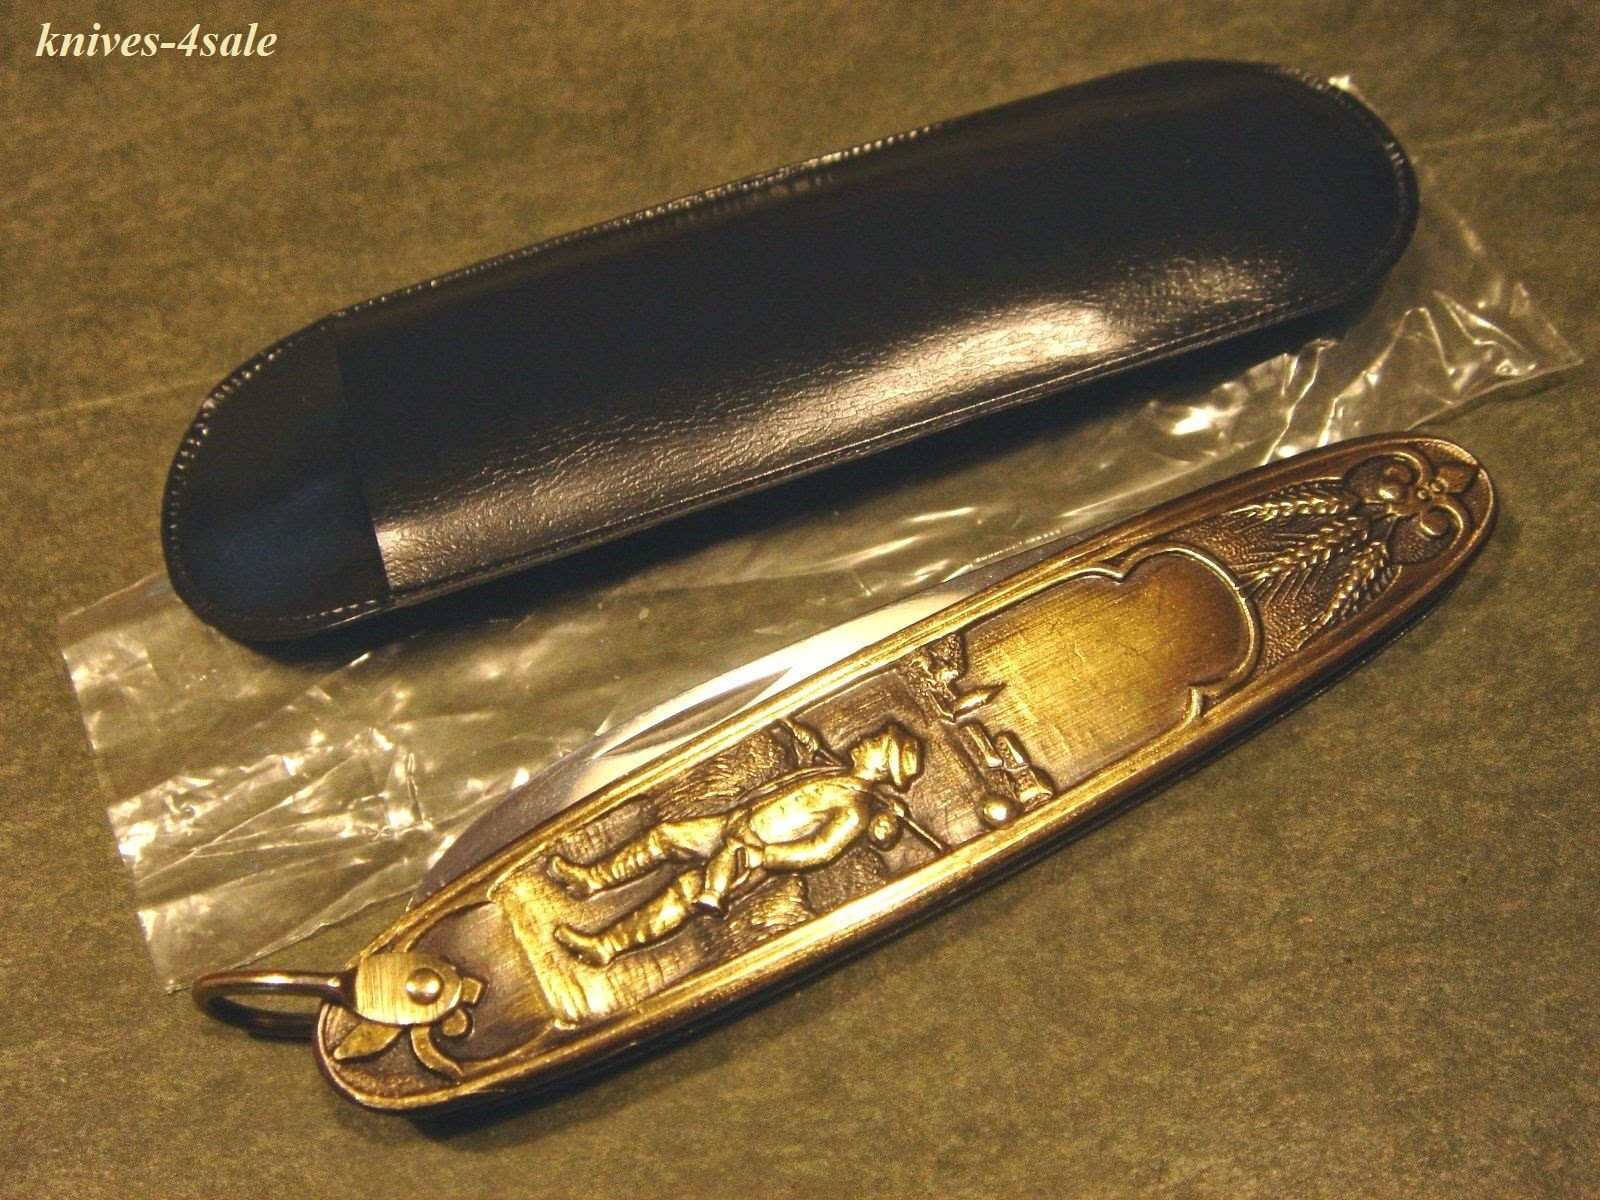 Solingen Germany  city images : knives 4sale: Arnex Solingen Germany Brass Deco Knife